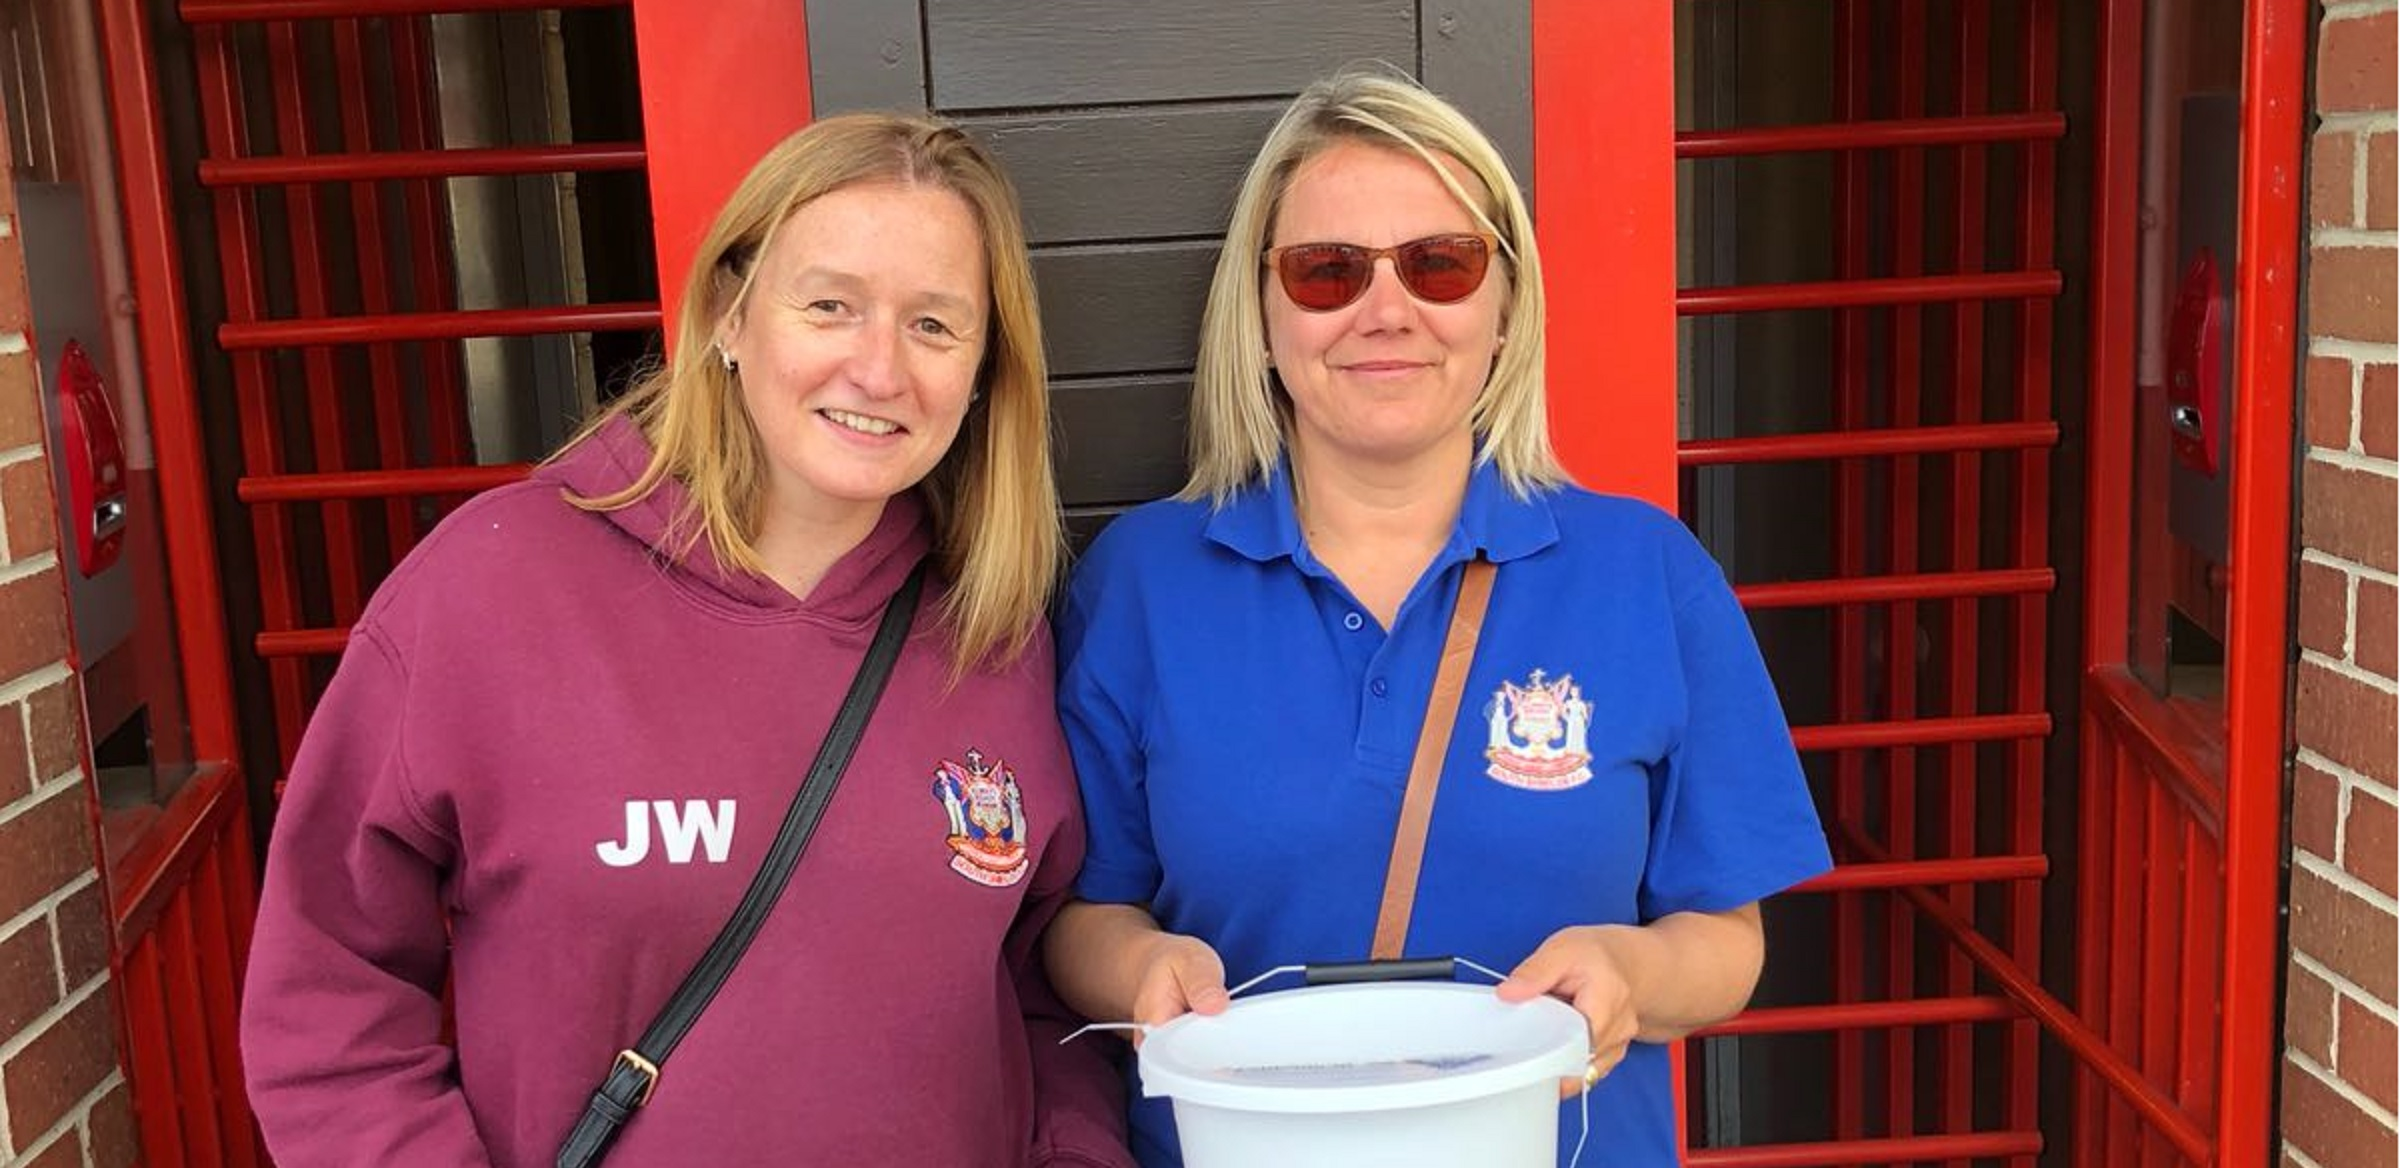 SSFC Foundation benefits from generous donations at Sunderland-Oxford game